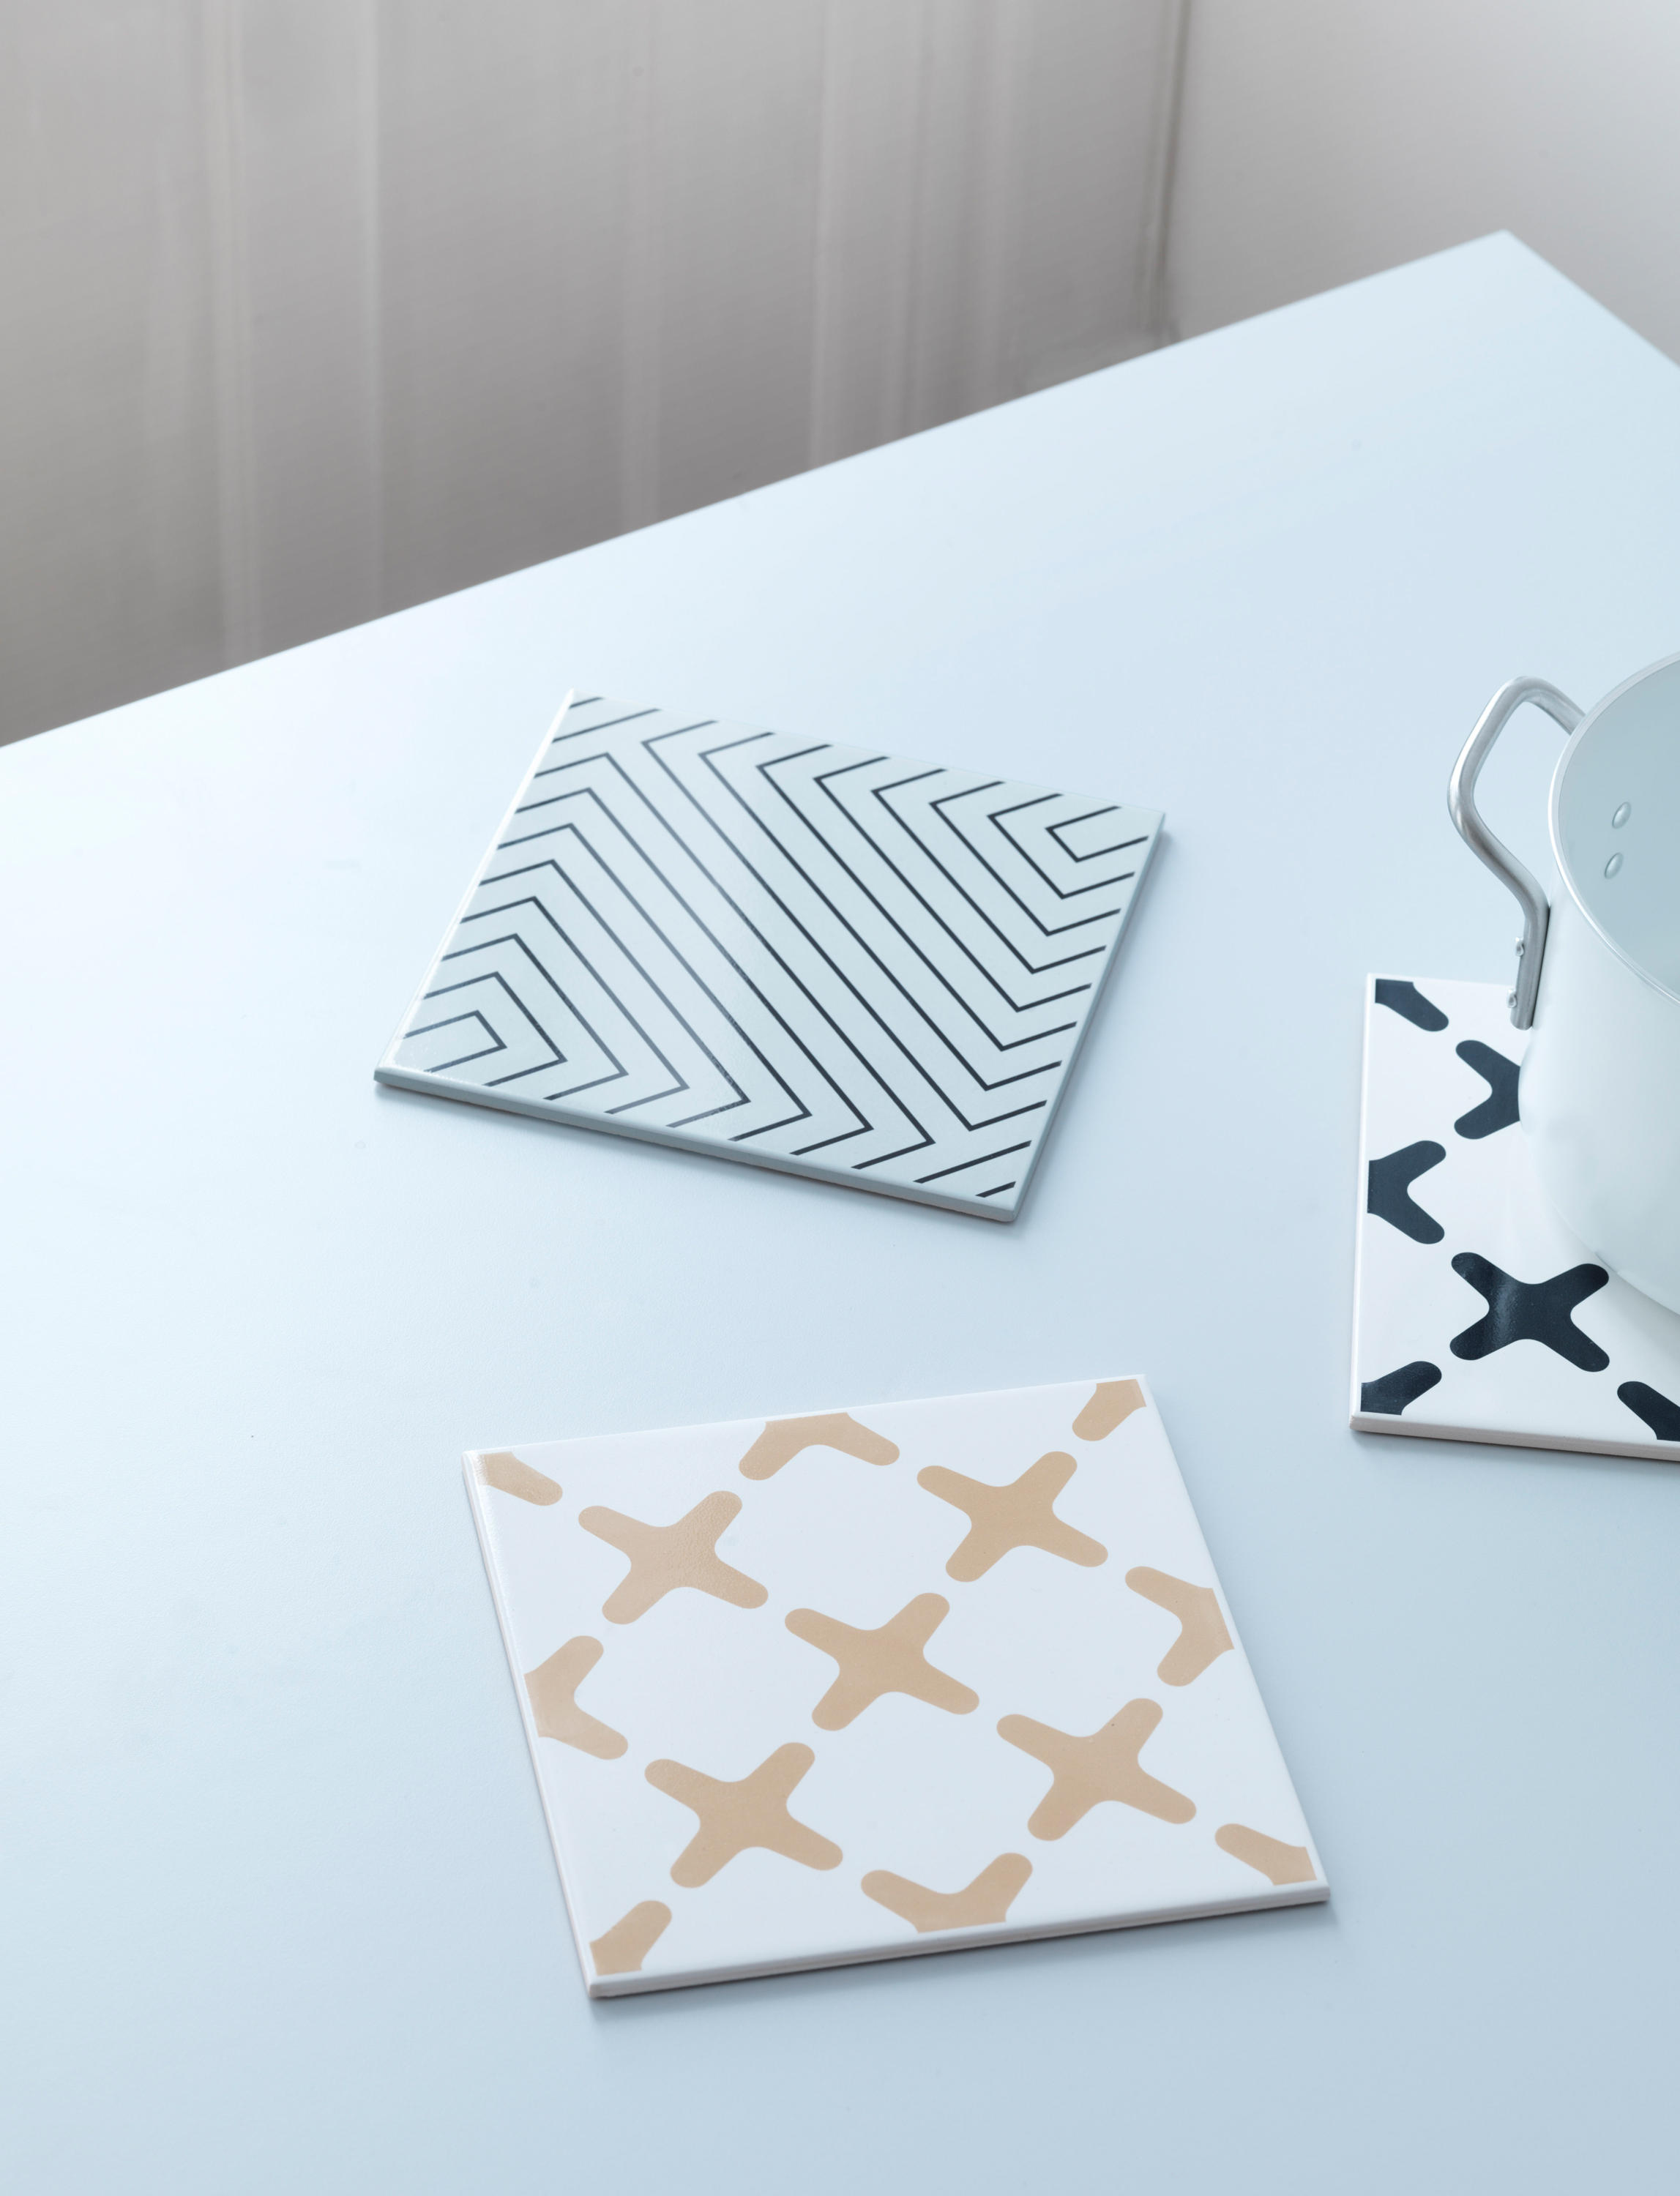 EXES - Coasters / Trivets from by Lassen | Architonic